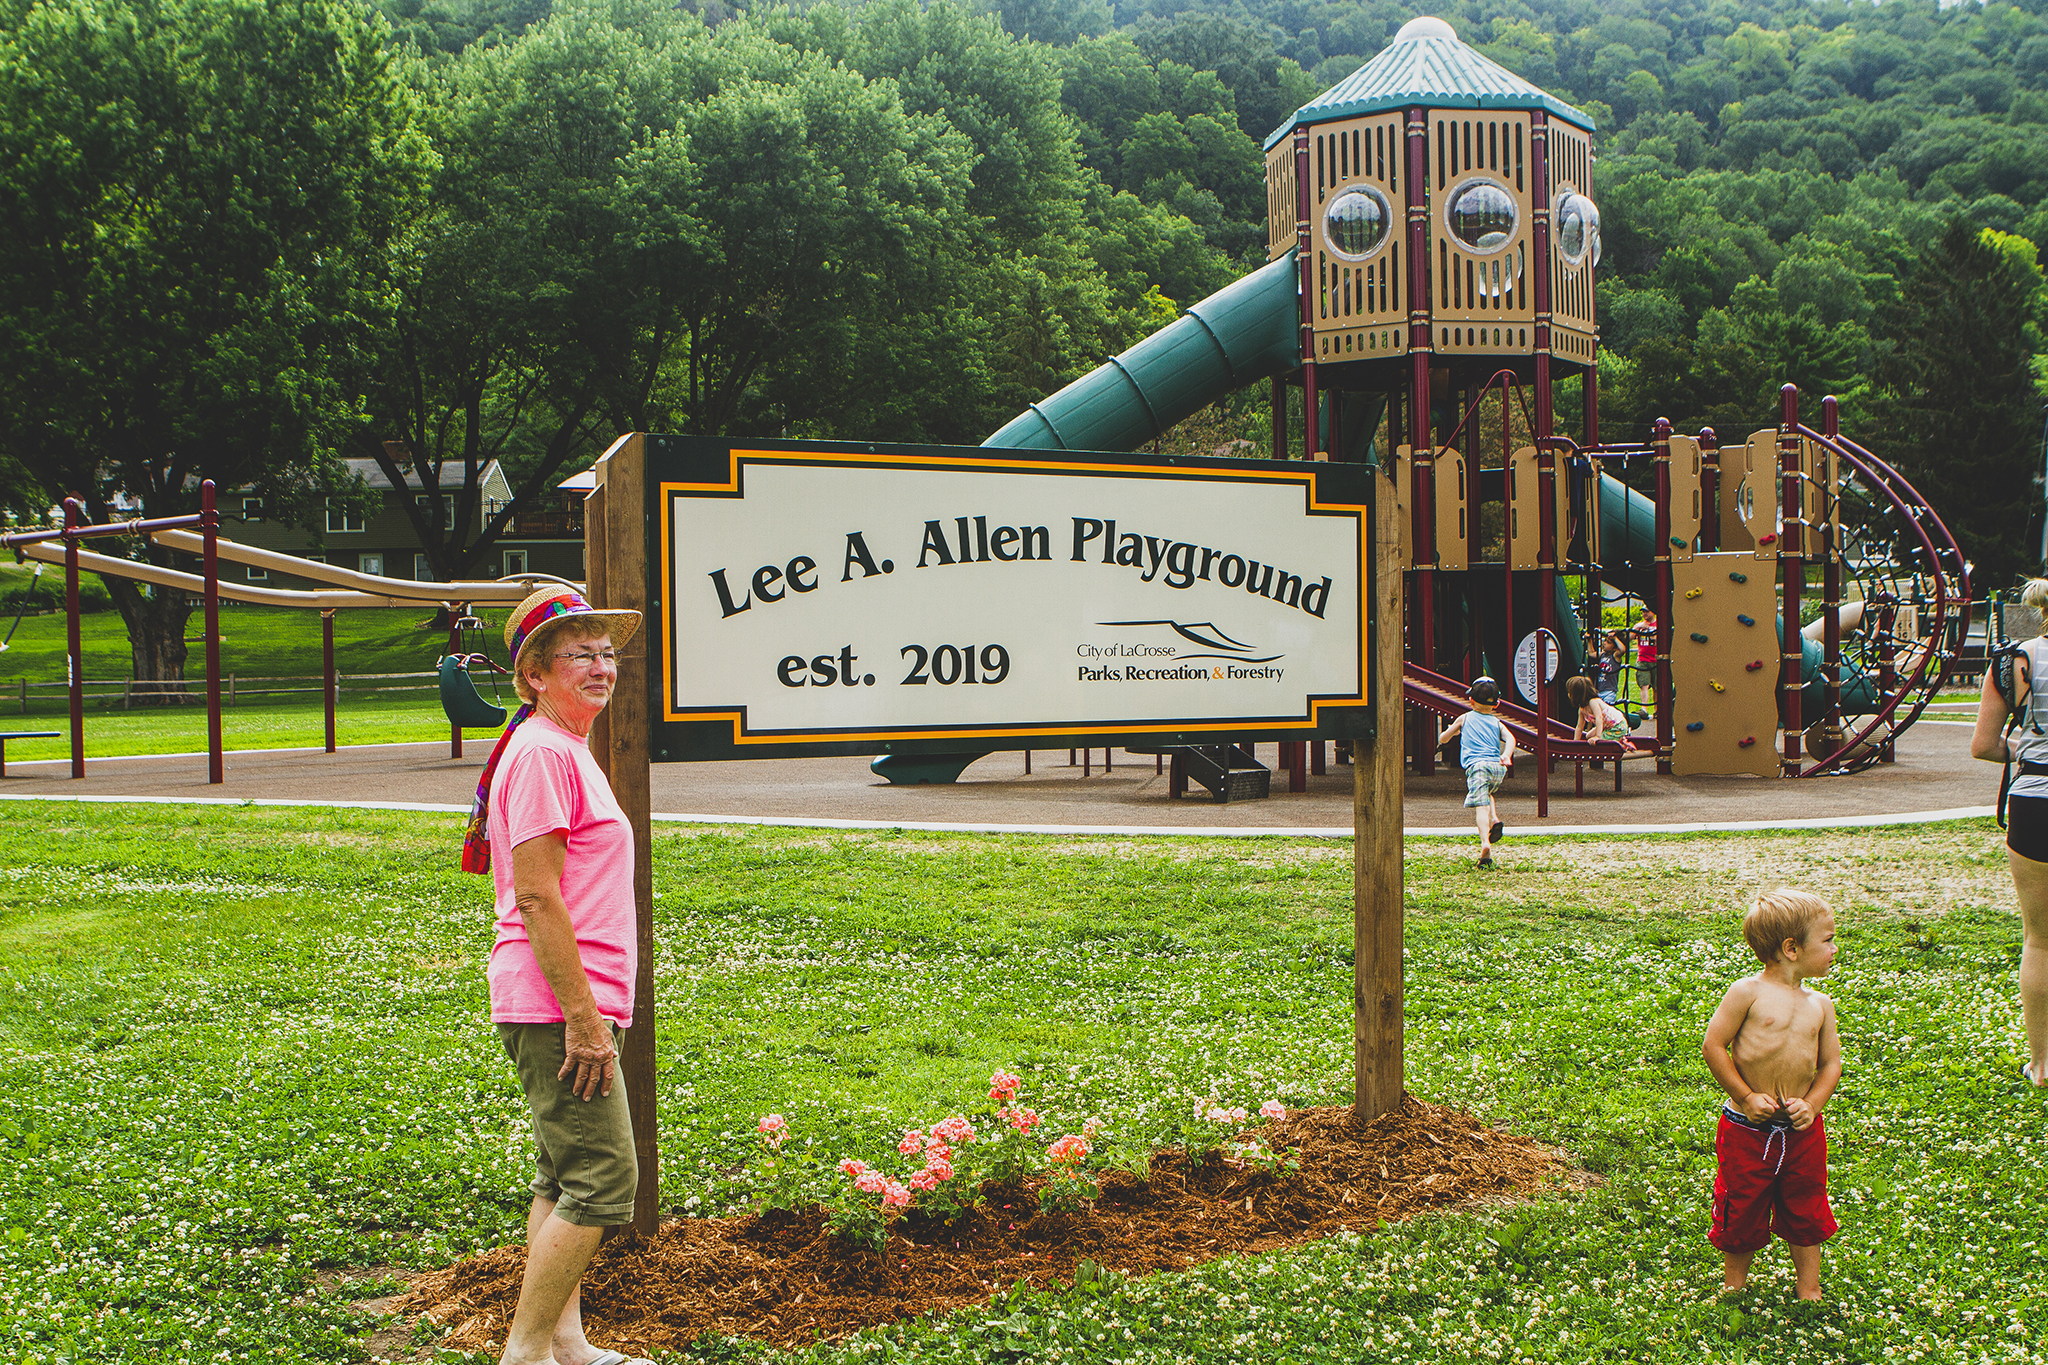 Janet Allen stands proudly at the dedication of the new Lee A. Allen Playground in La Crosse, WI